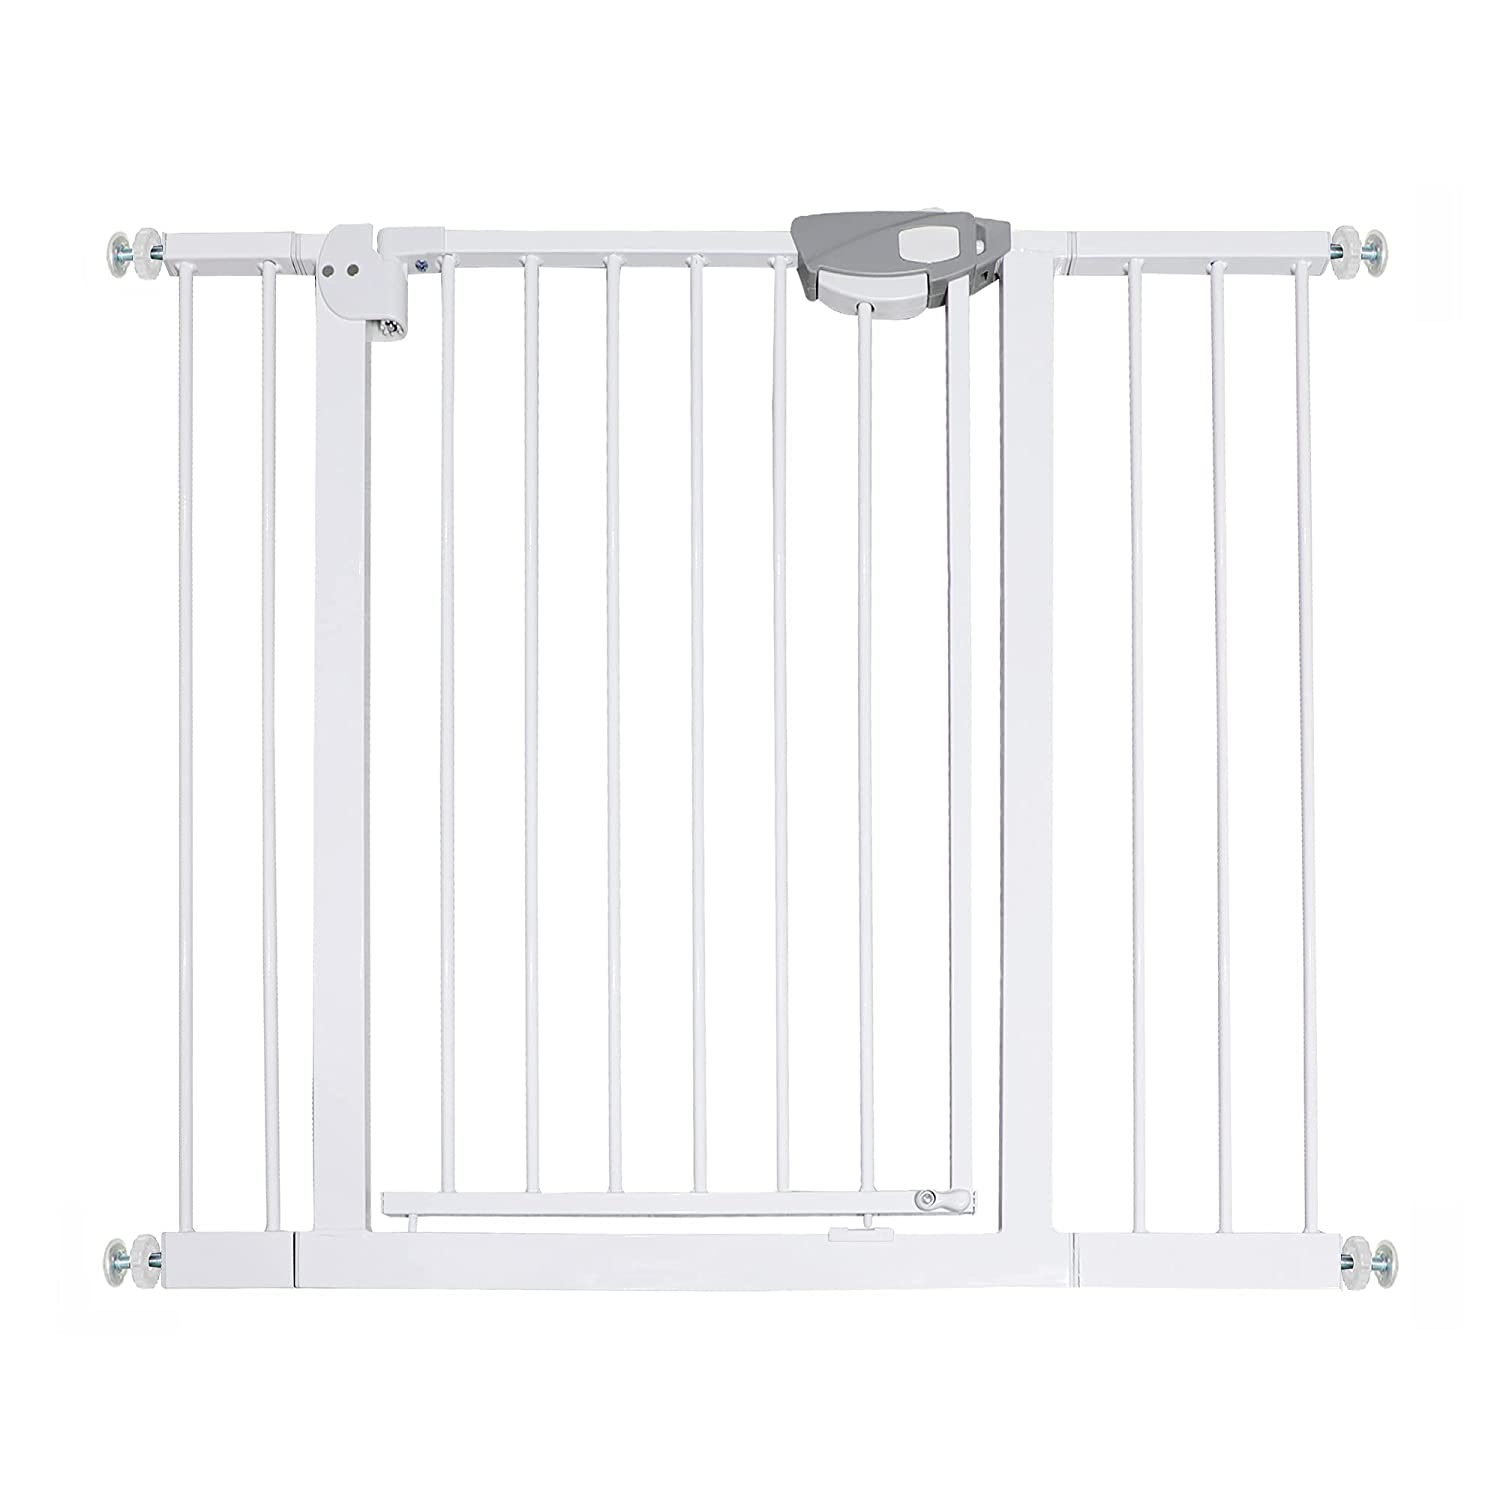 Auto Close Banister Baby Gate Walk Thru for Gates Pets New products world's highest quality popular Elegant A Kids Or